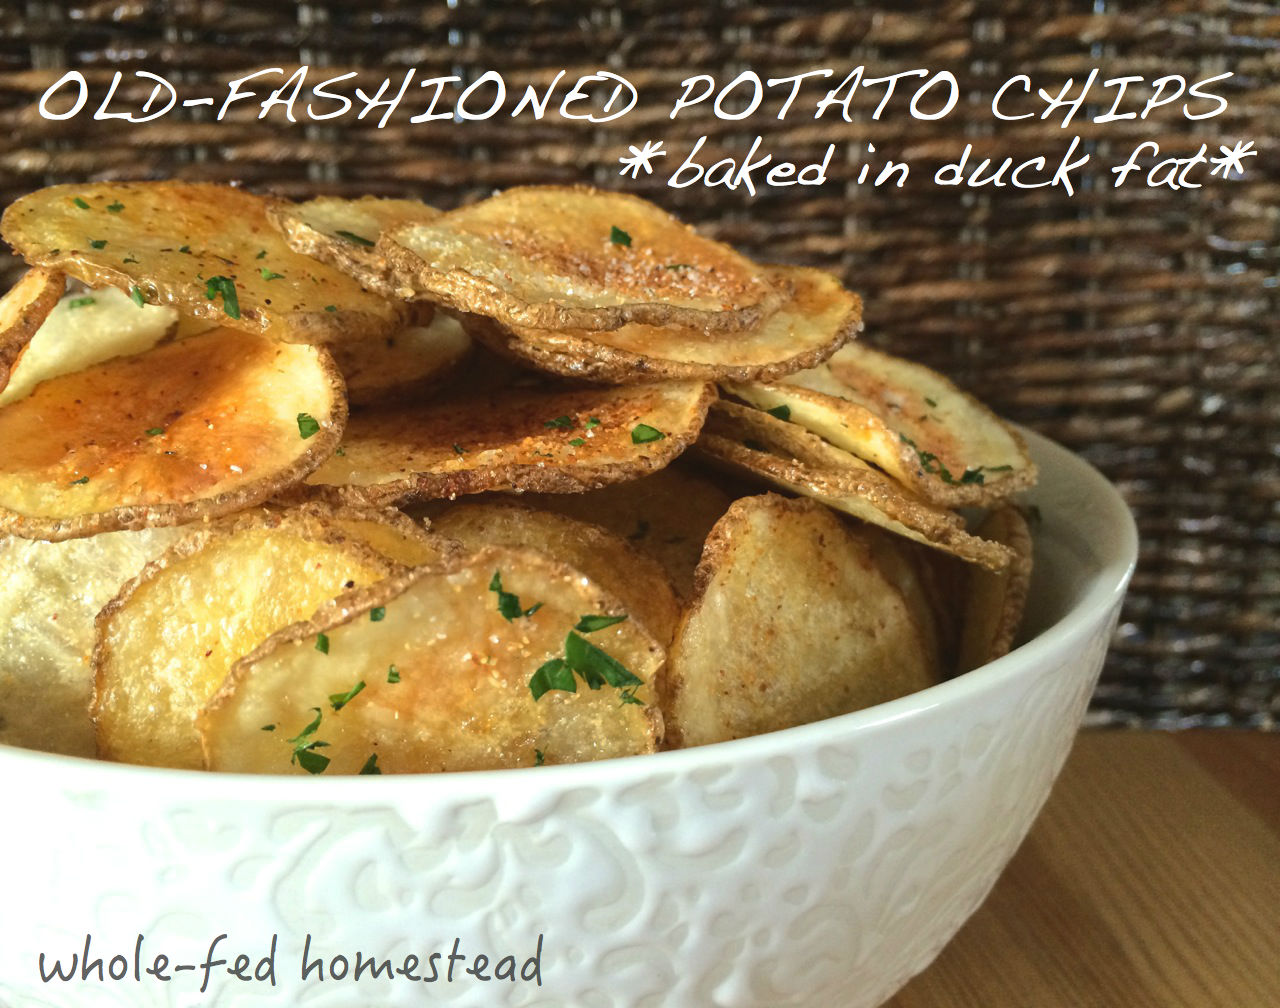 Old Fashioned Duck-Fat-Baked Potato Chips